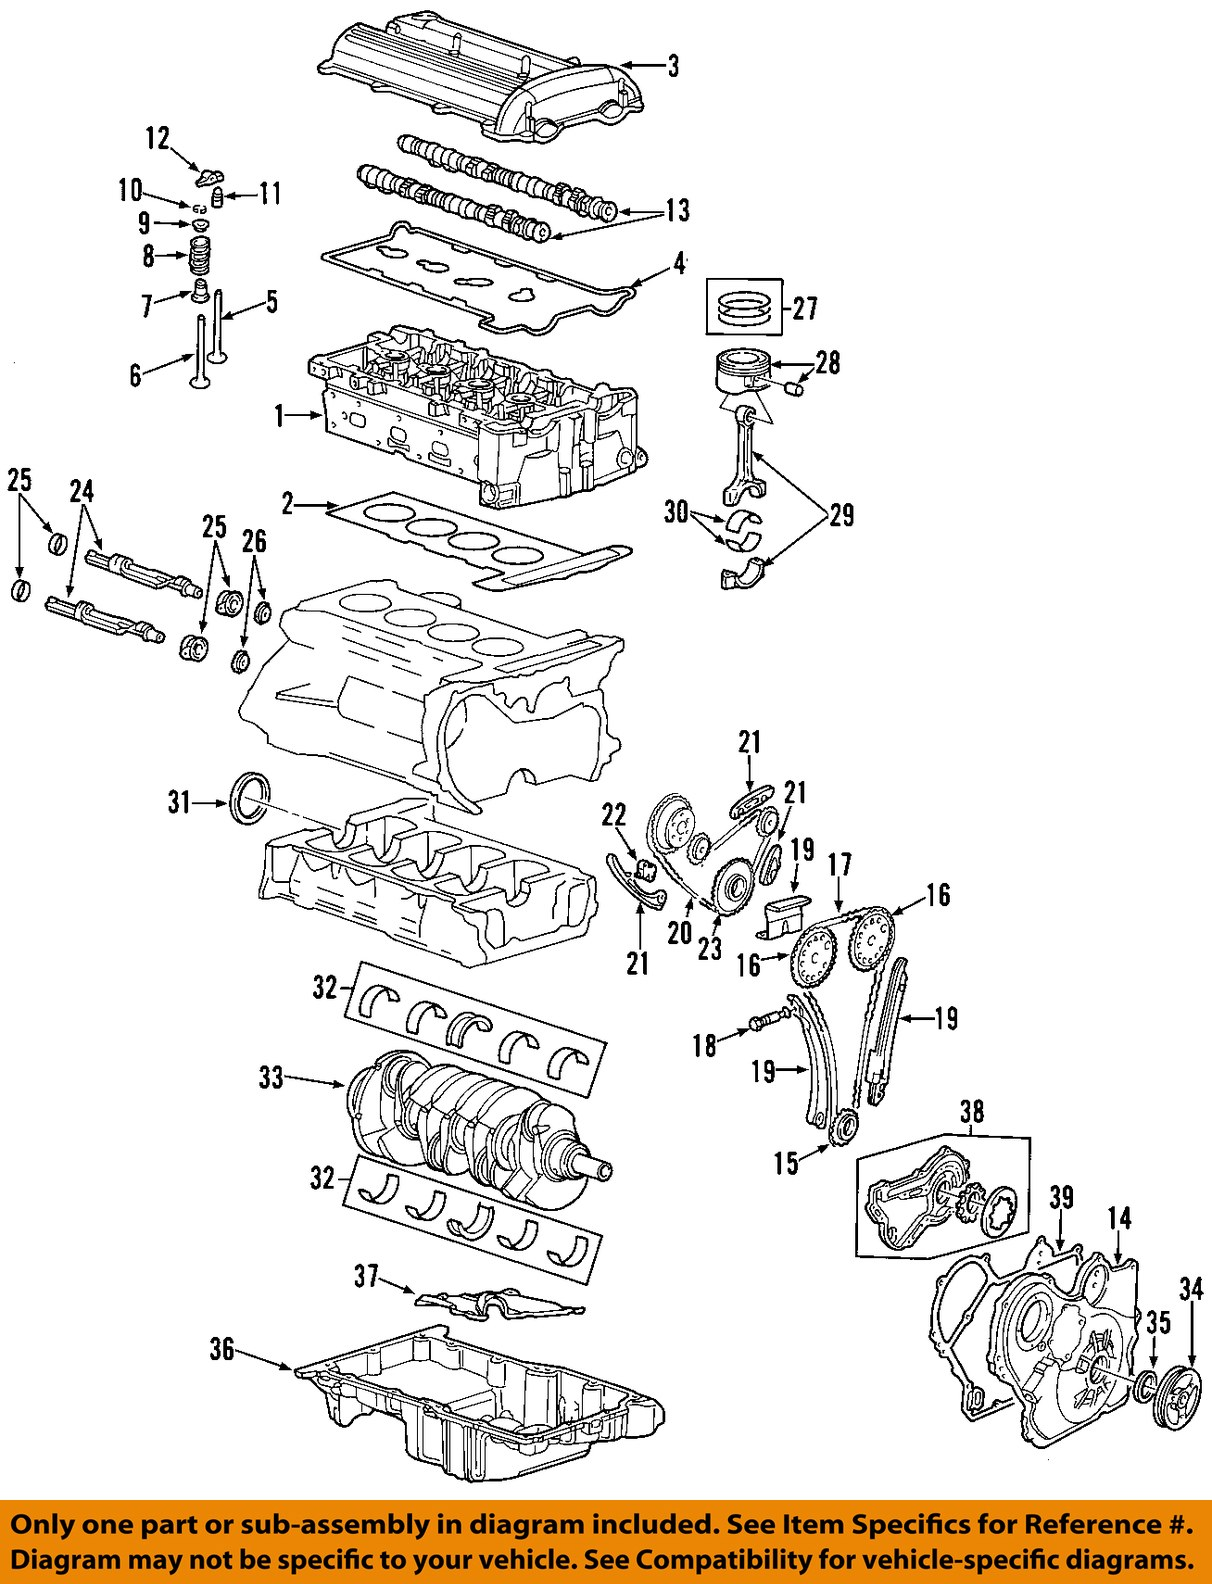 1999 Ls1 Engine Diagram Electrical Wiring Diagrams 99 Saturn Sl Introduction To U2022 2010 Camaro